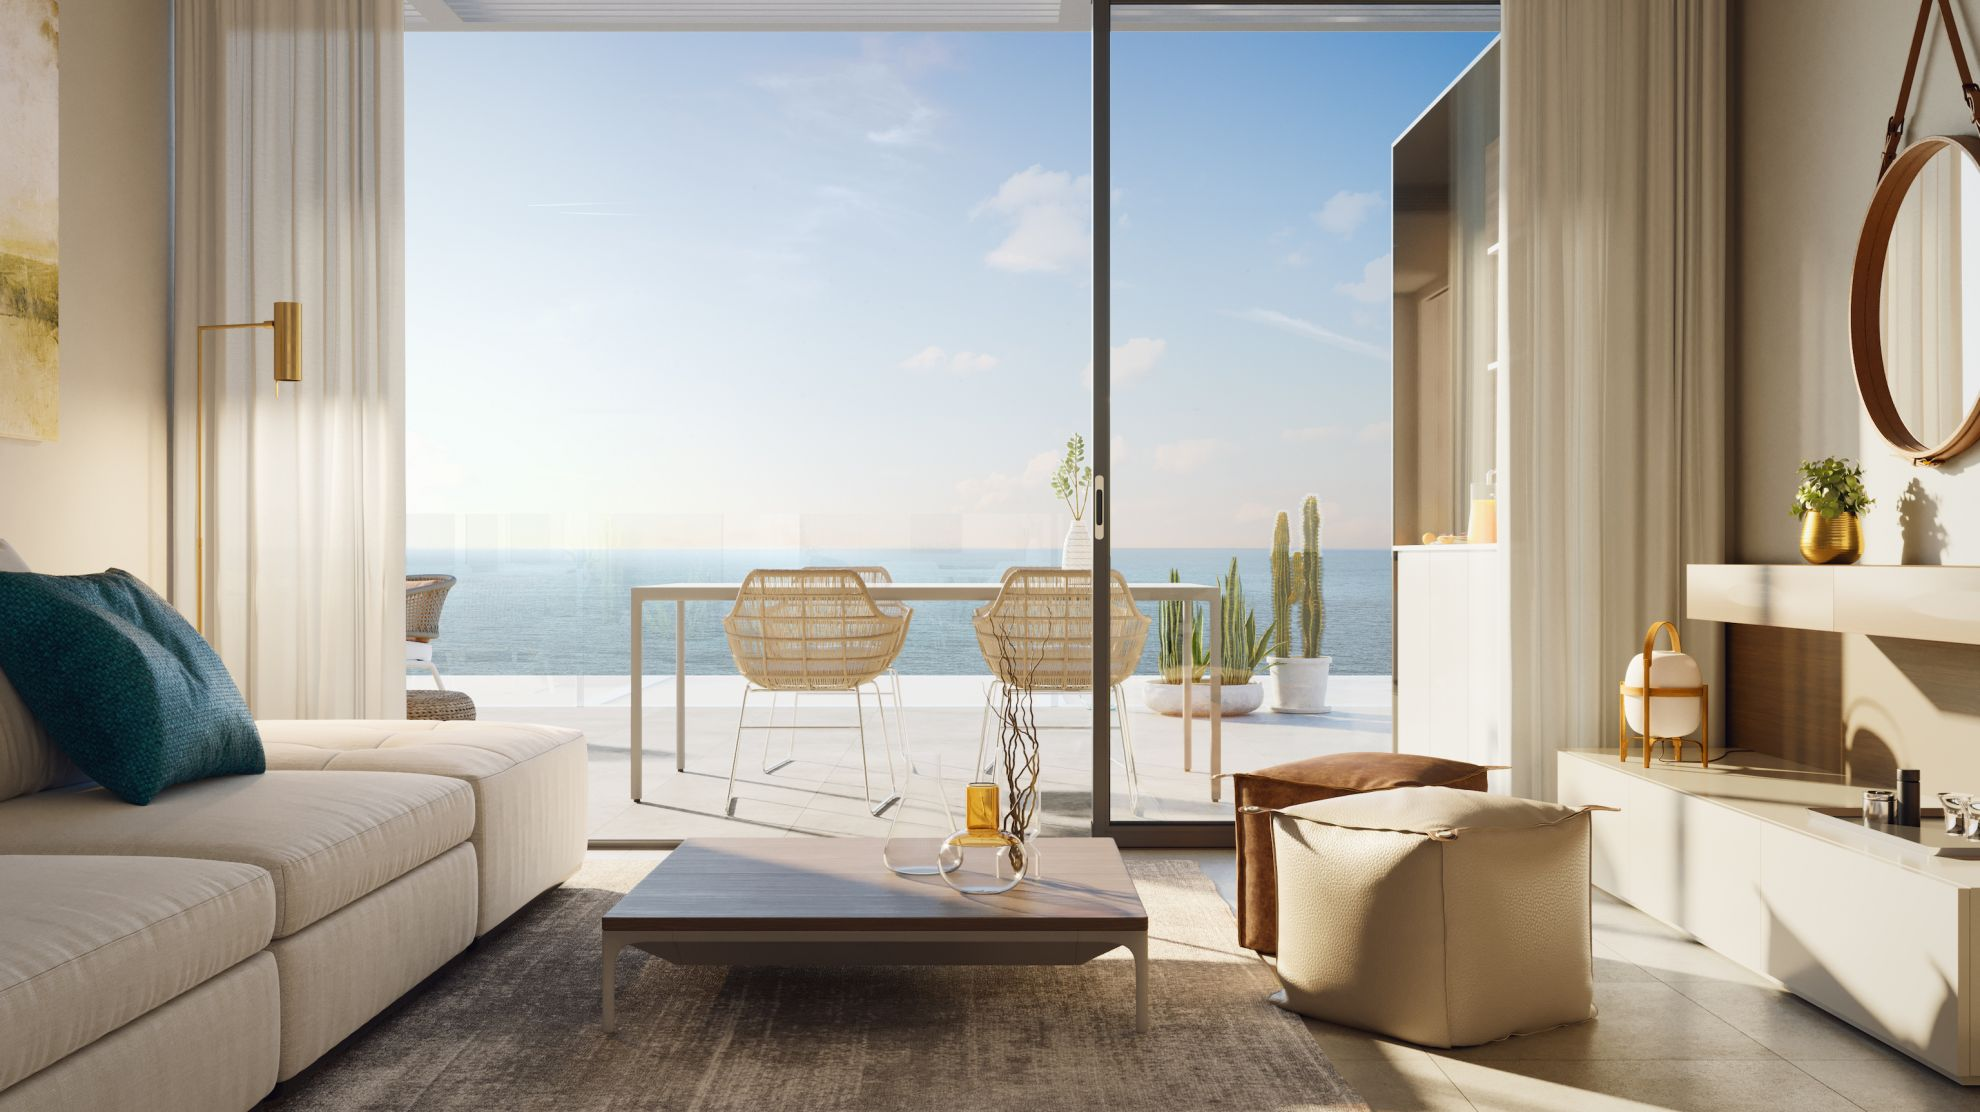 2 and 3 bedroom penthouse-style apartments with big terraces overlookg the sea. House 13 11